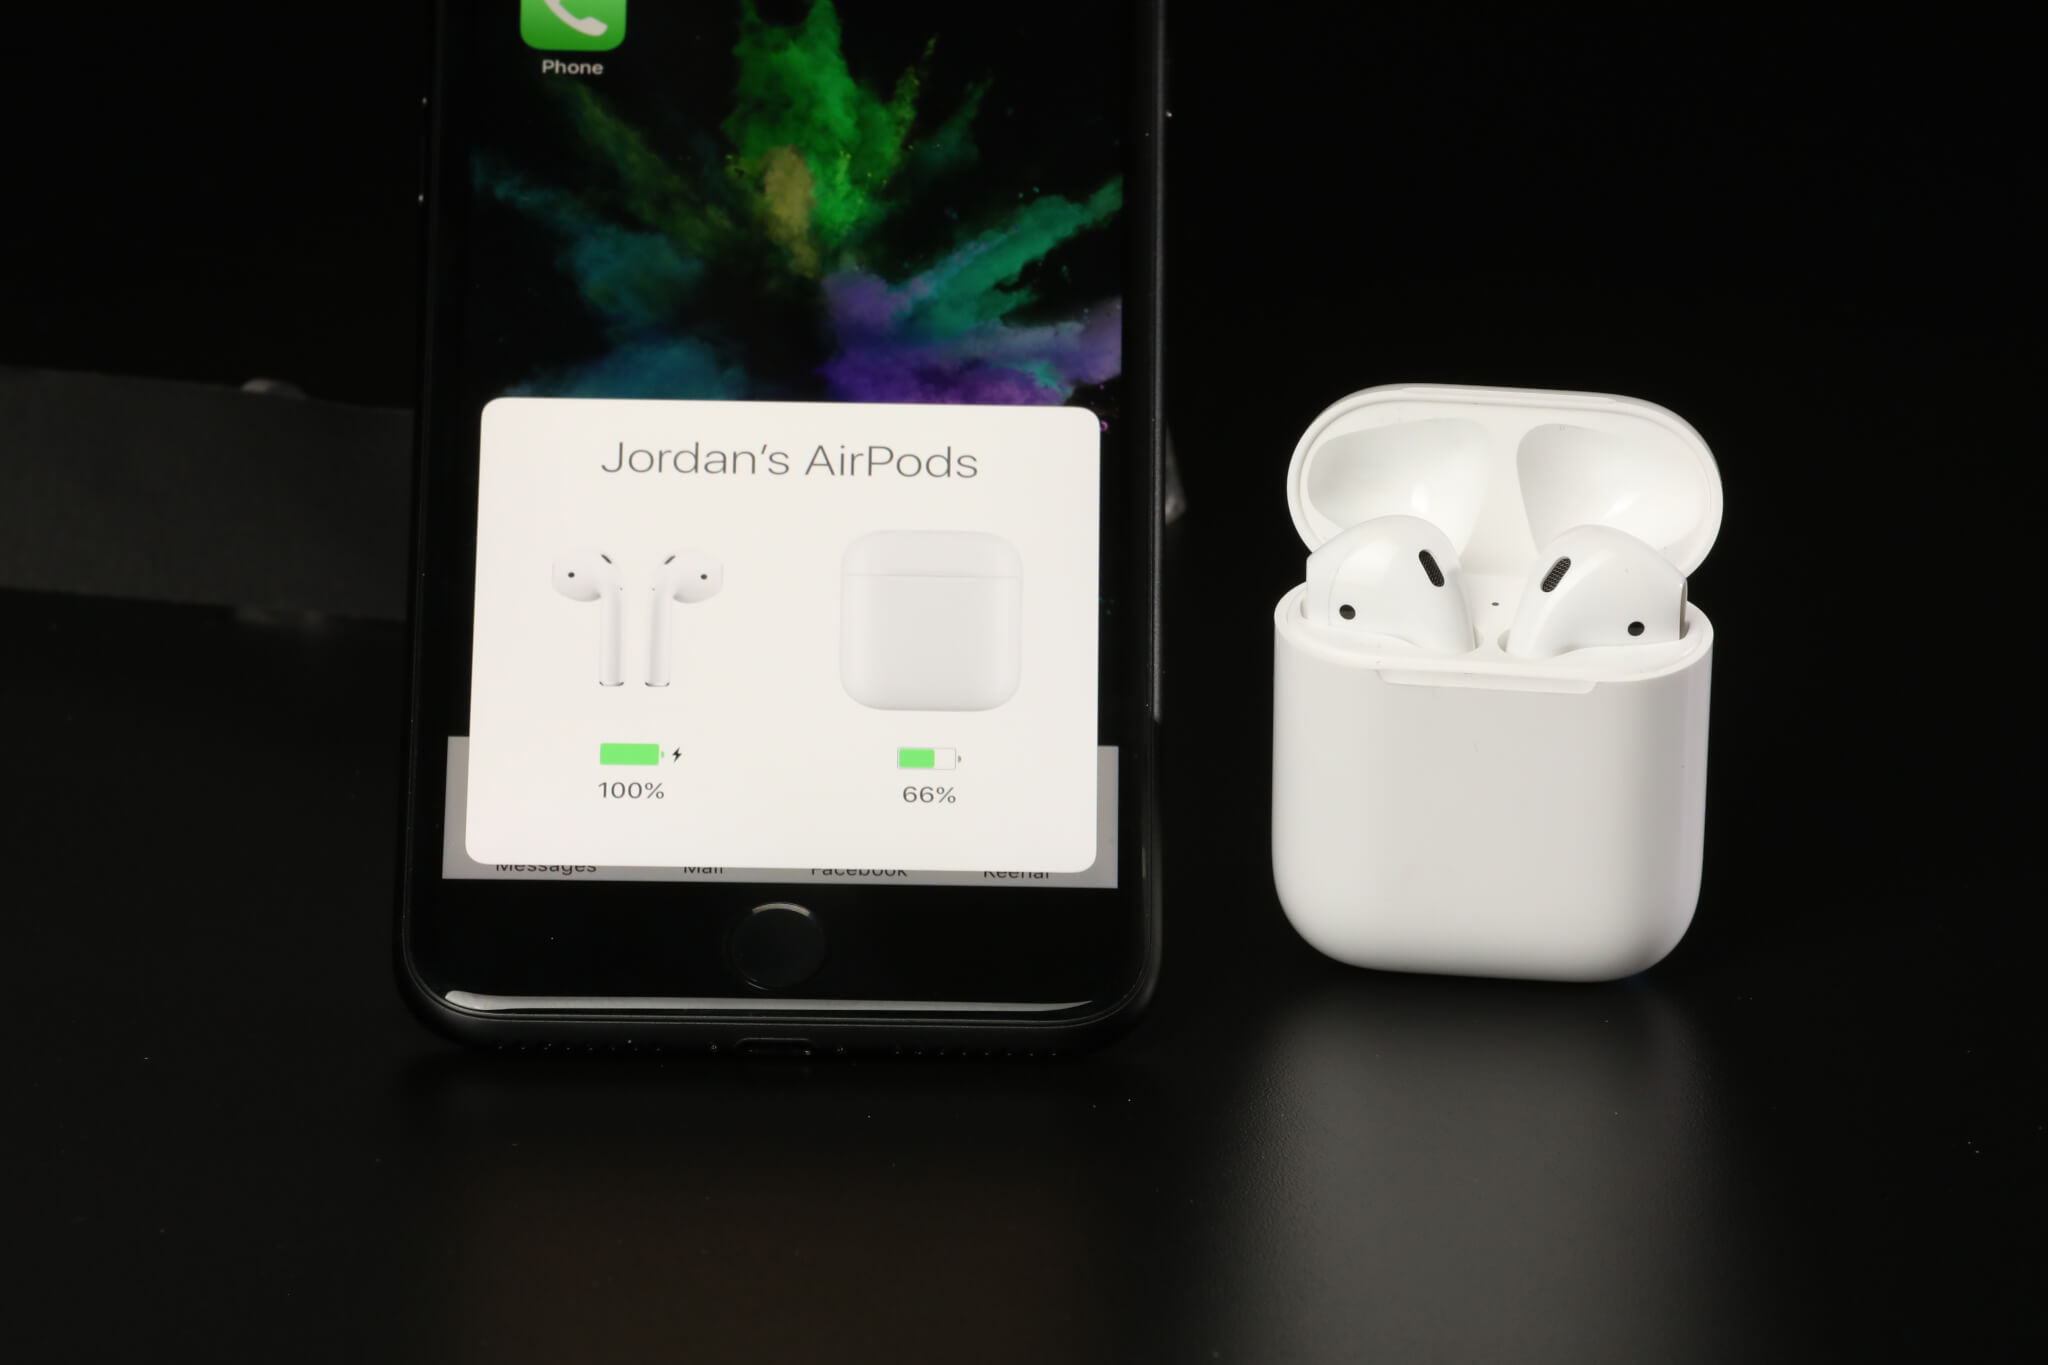 AirPods in case and the box that pops up when the case is nearby to show remaining battery life.